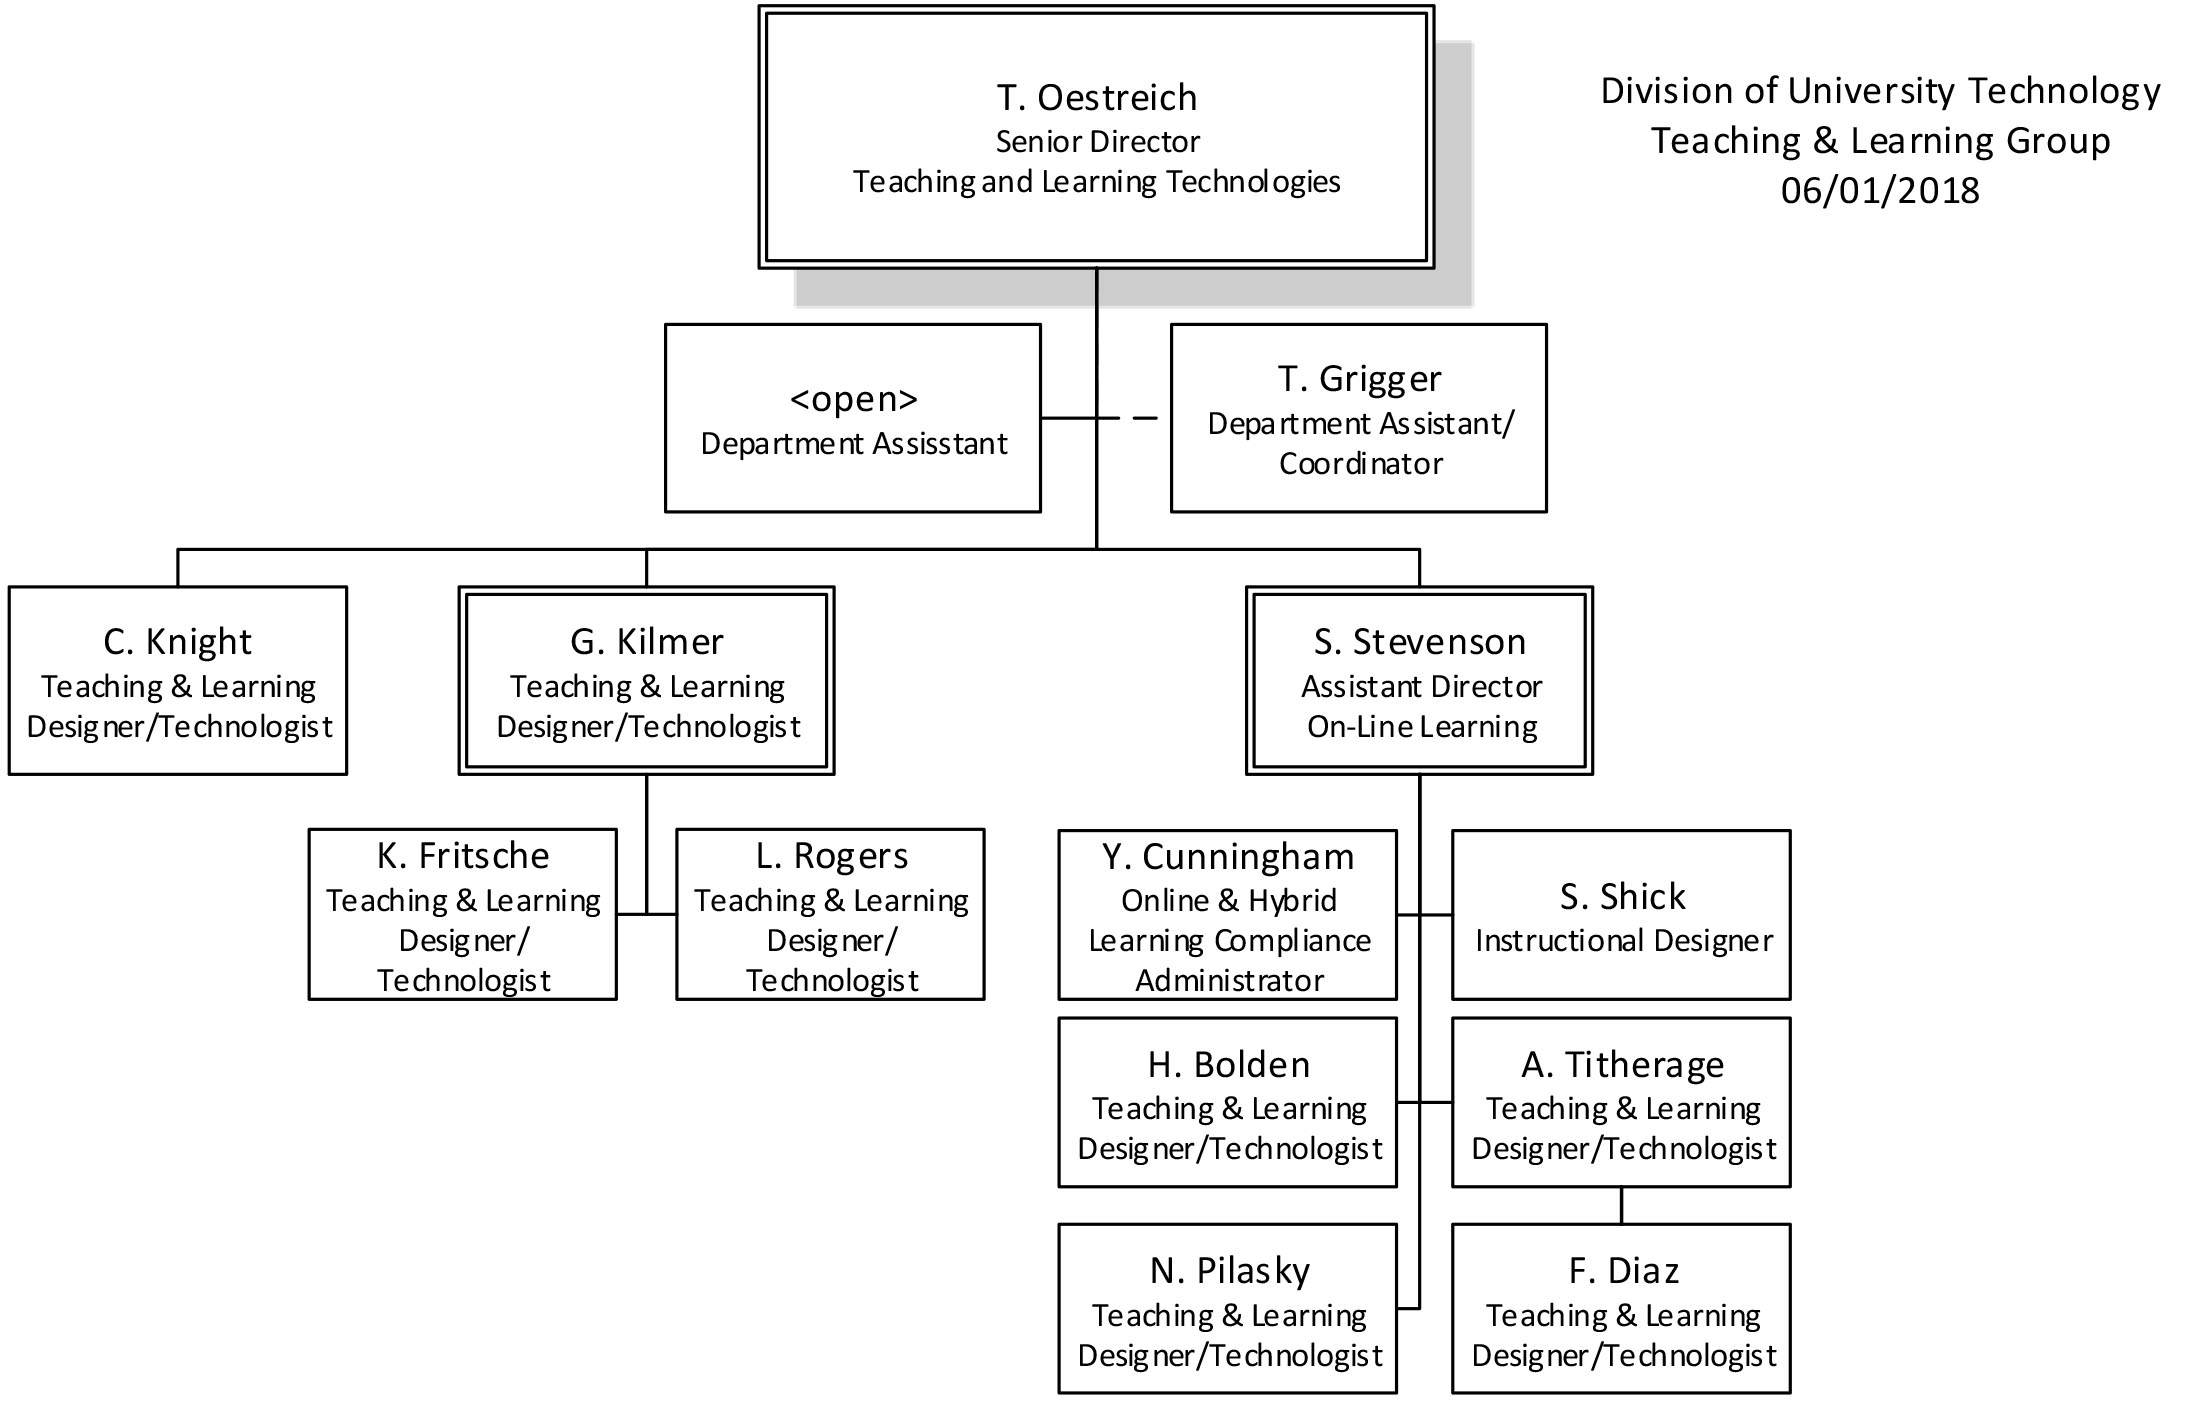 Teaching and Learning group structure as of June 1st, 2018